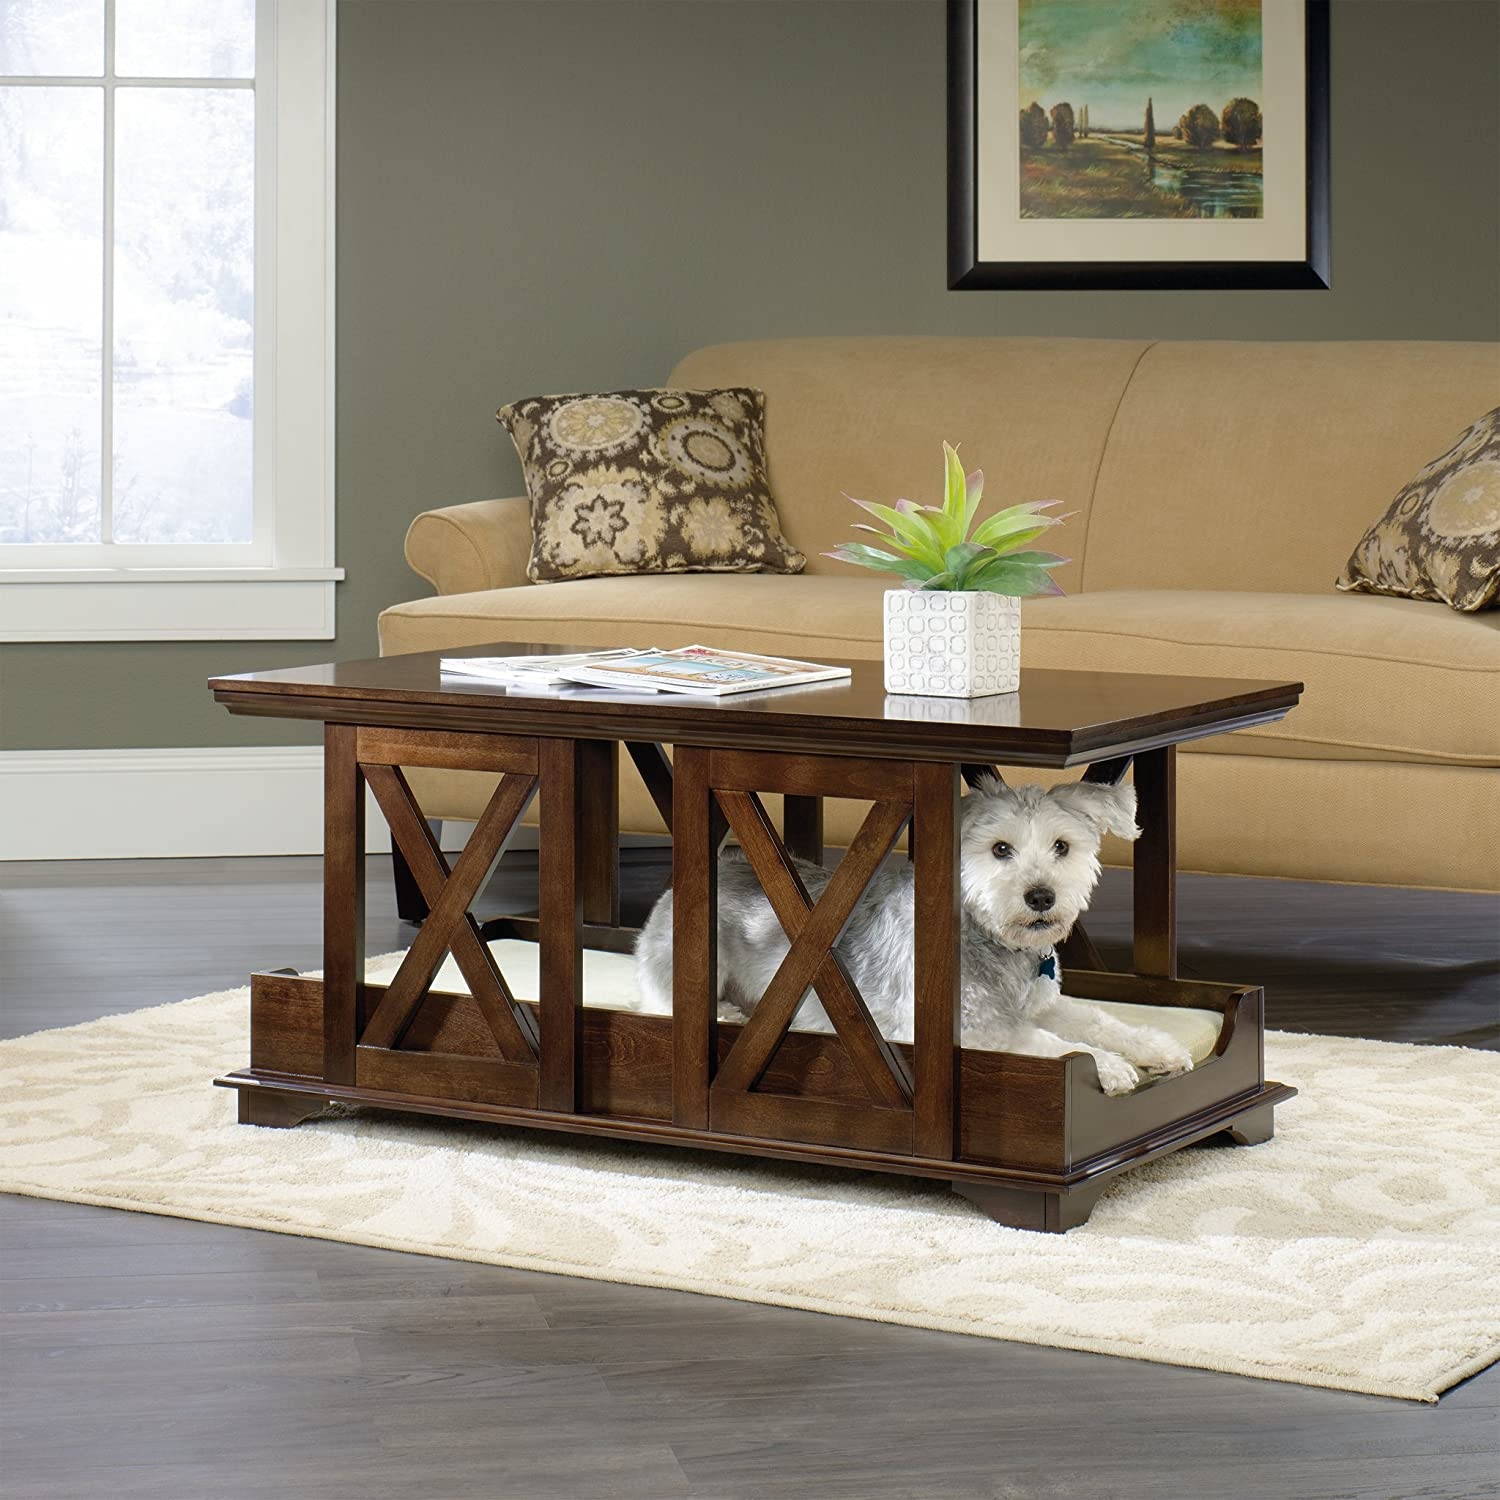 Hugo Coffee Gift Recommendations Dog Bed and Coffee Table | Giving to Dog Rescue Organizations